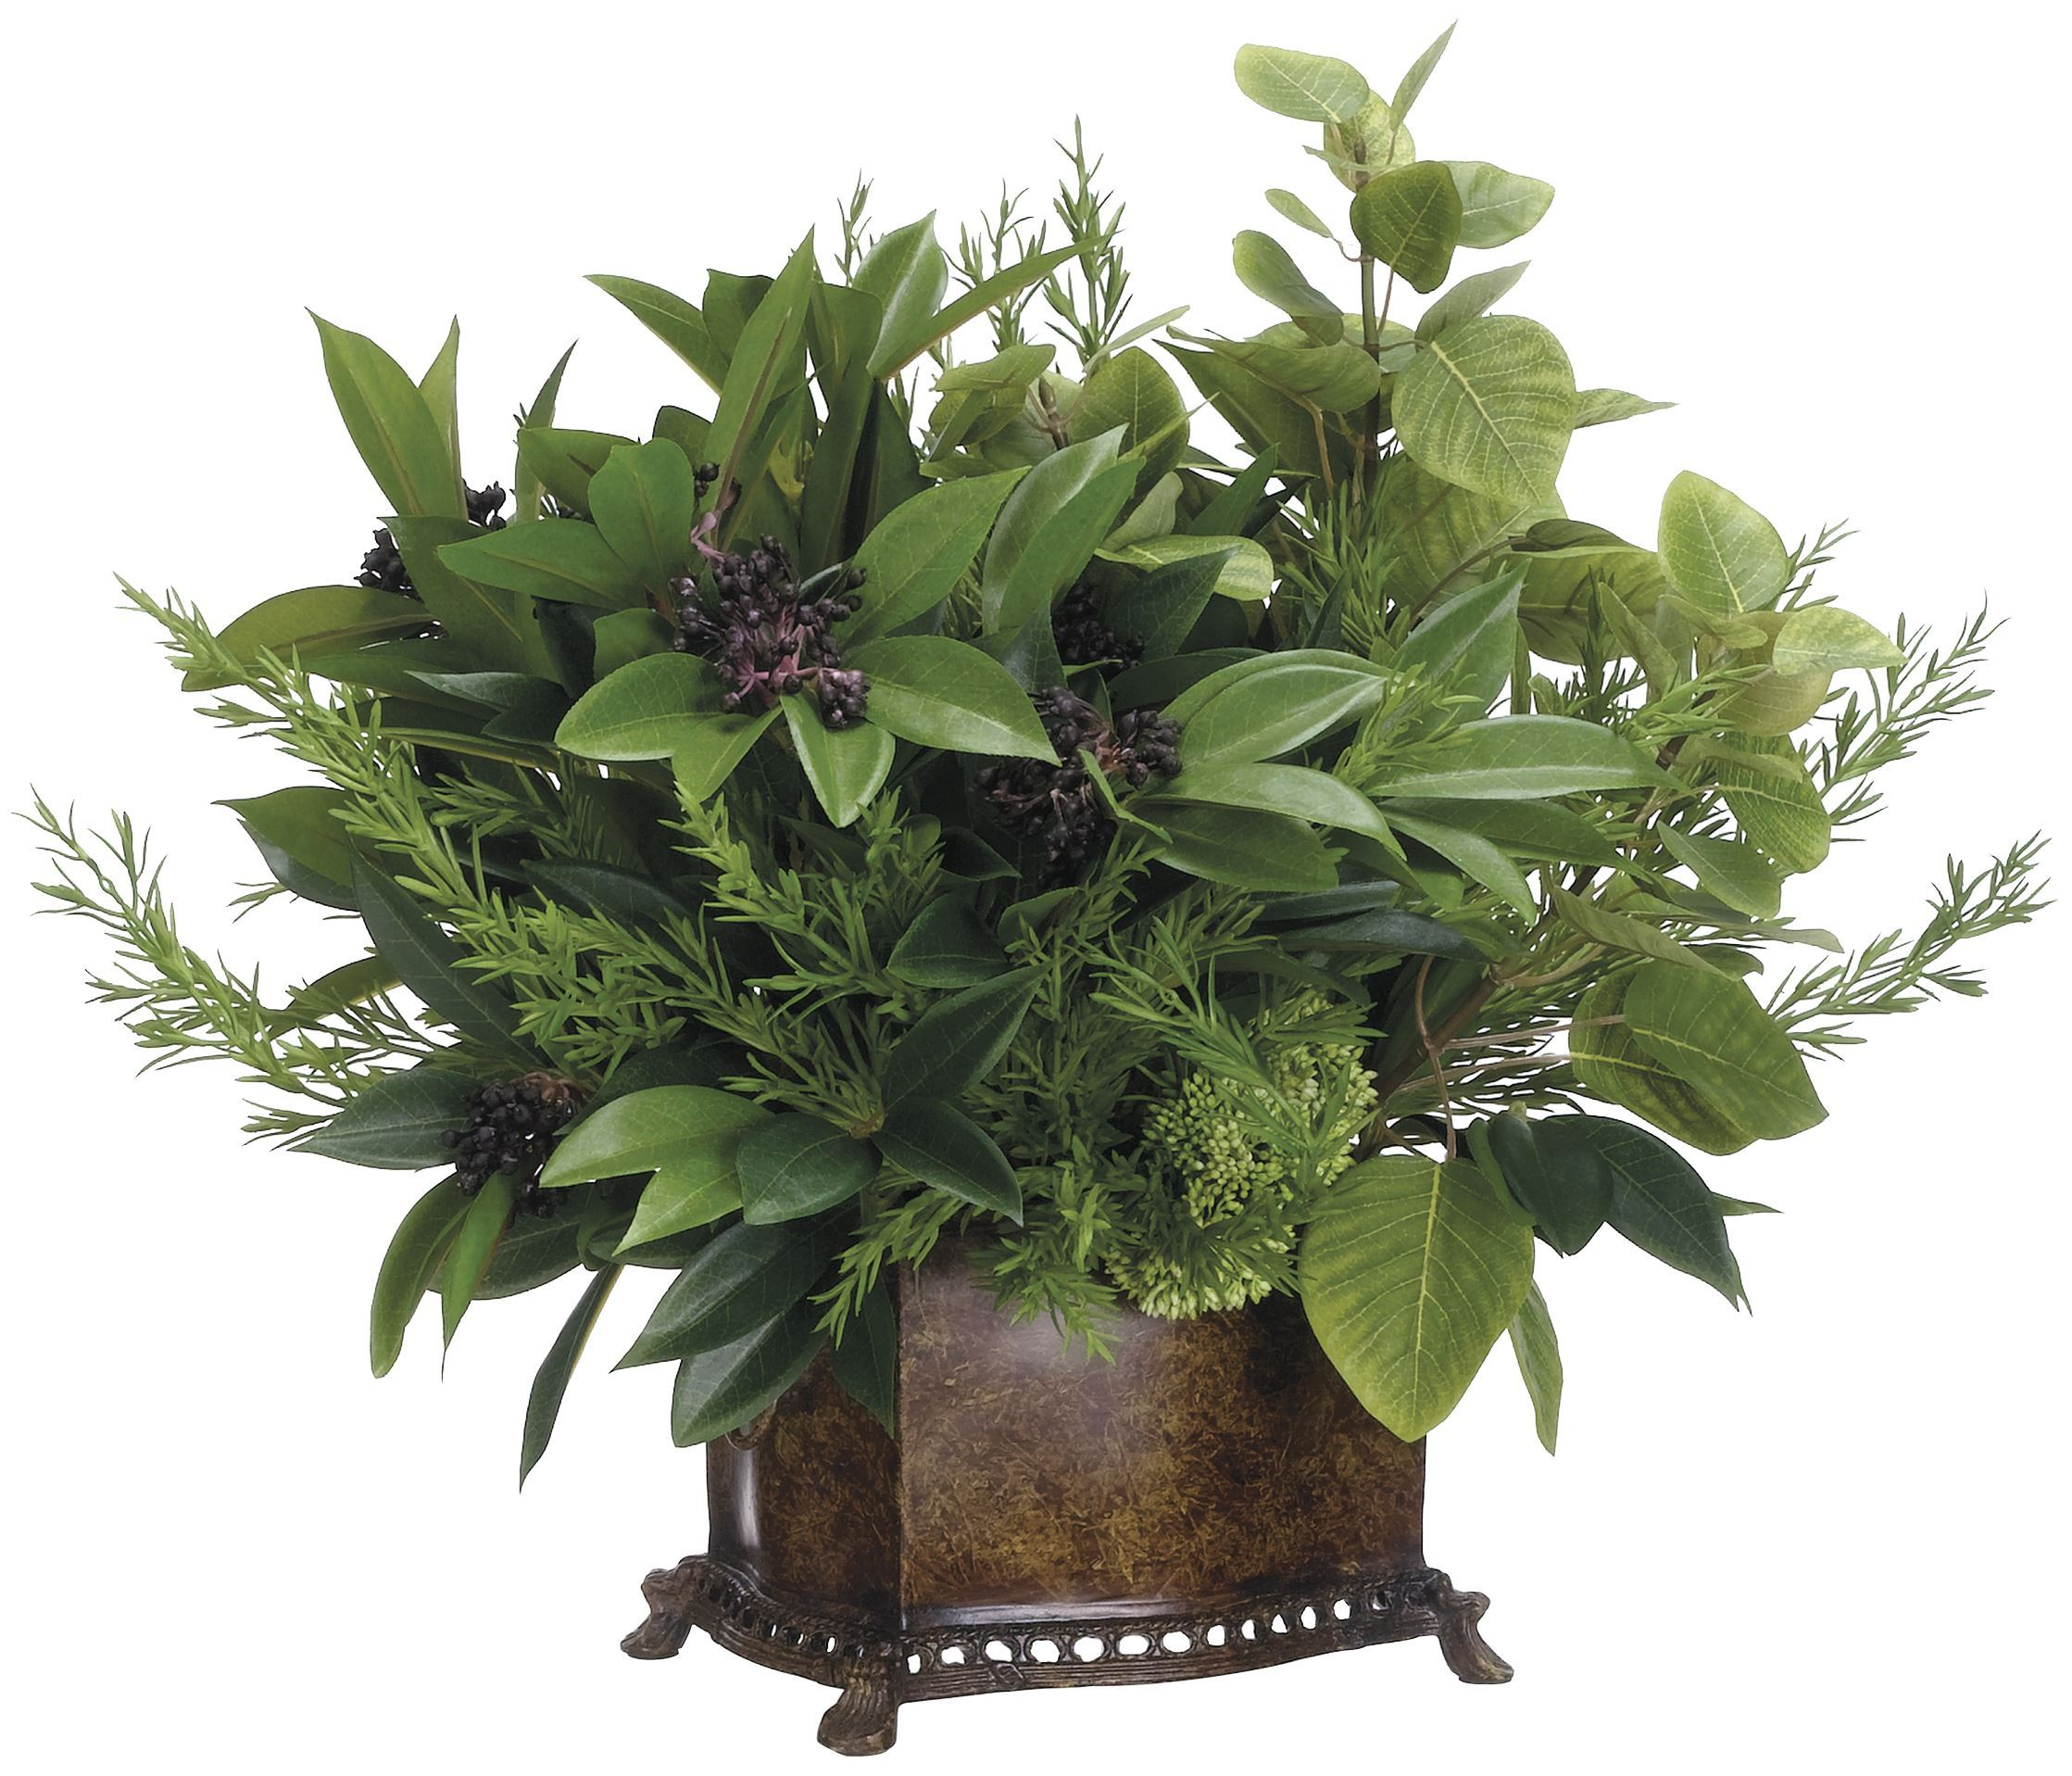 Lifelike Plants Lifelike Mixed Greenery Arrangement In Footed Decorative